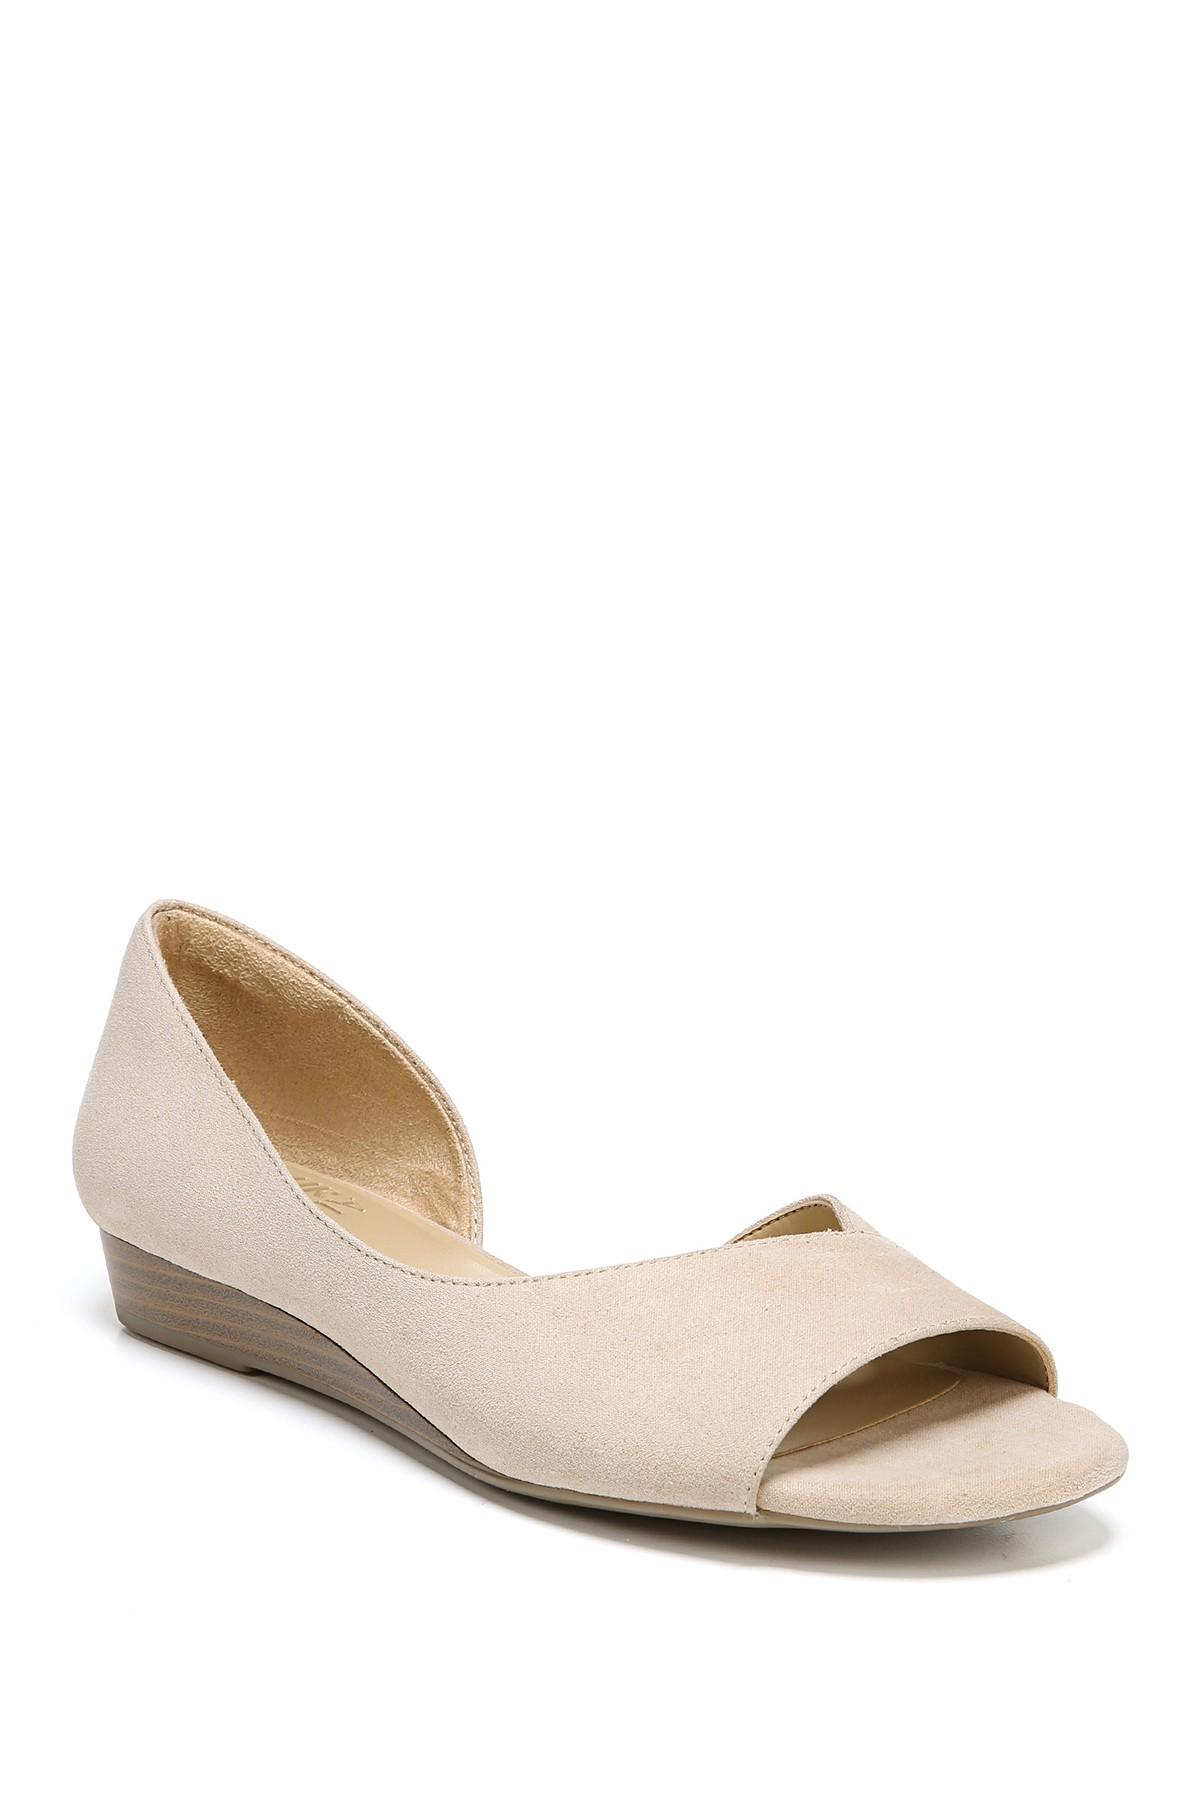 9a0bbc96250 Naturalizer. Women s Jasmin Wedge - Wide Width Available